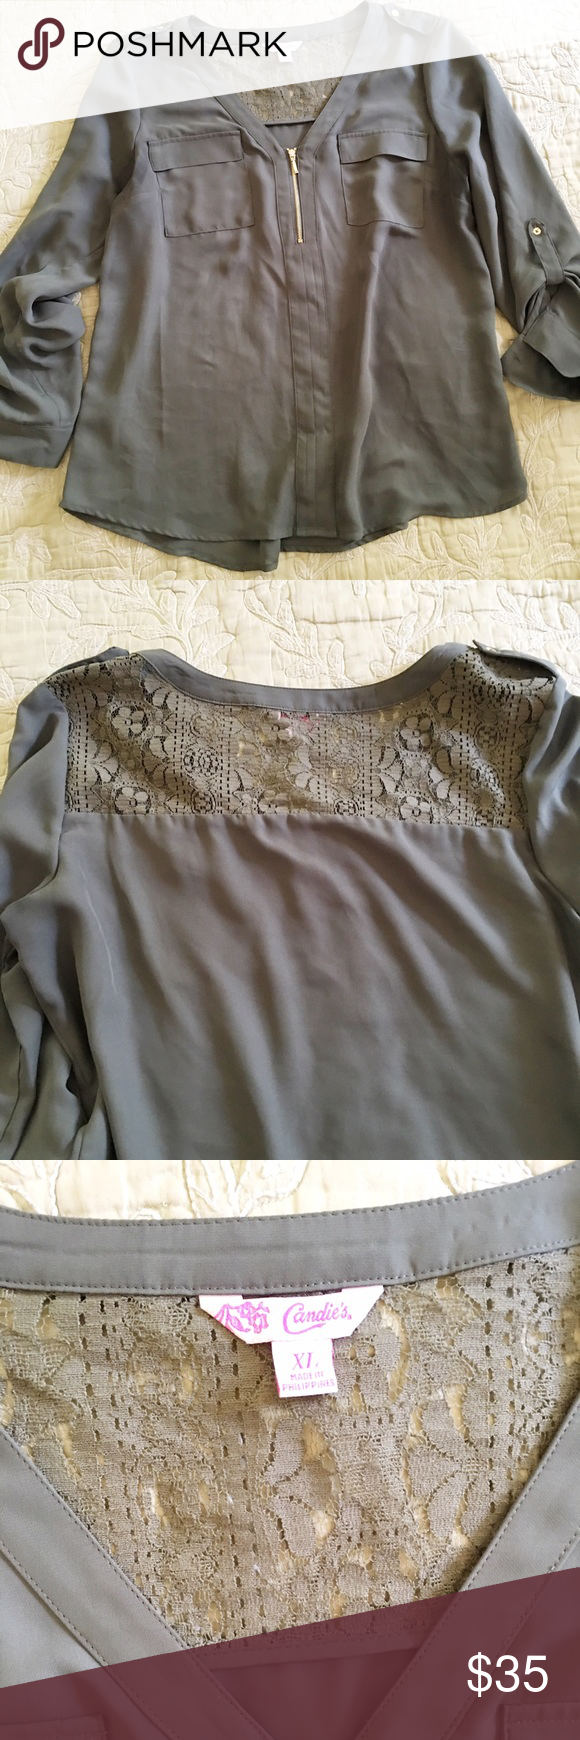 Candies Blouse Worn twice. Lace yoke in the back. Equipment sleeves (buttoned up or worn down) 1/2 zipper. Army green with gold accents. Size XL. Fit more like a L. Small stain in the back (see photo) washable. Candie's Tops Blouses